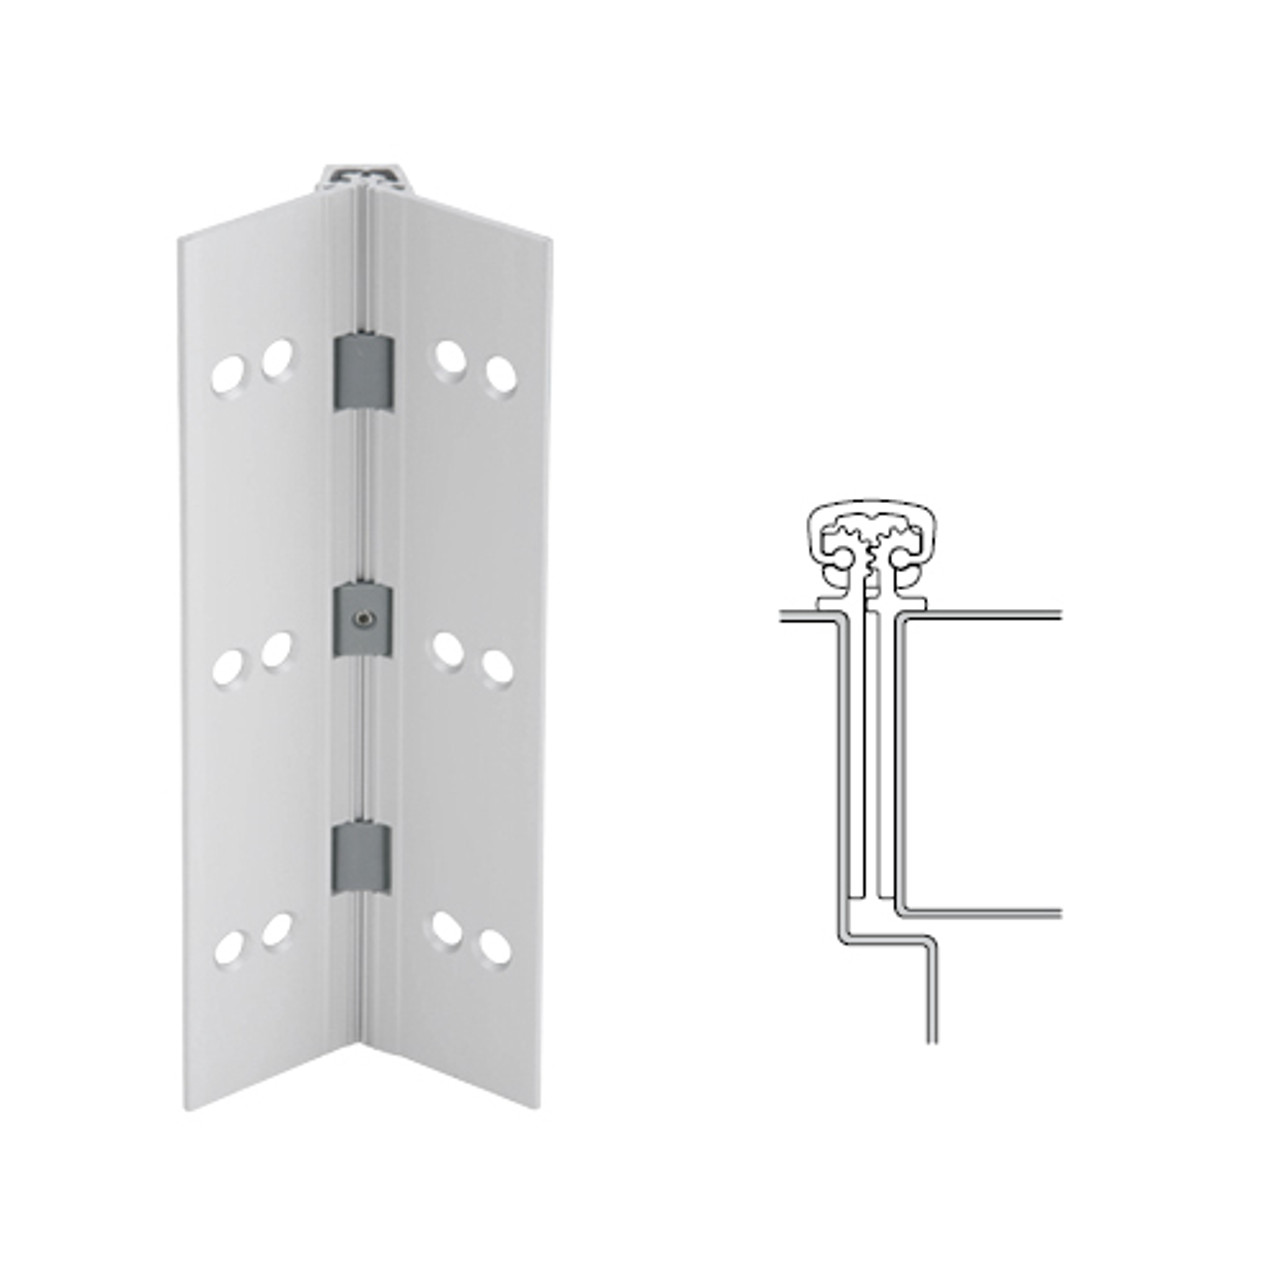 027XY-US28-95-TEKWD IVES Full Mortise Continuous Geared Hinges with Wood Screws in Satin Aluminum